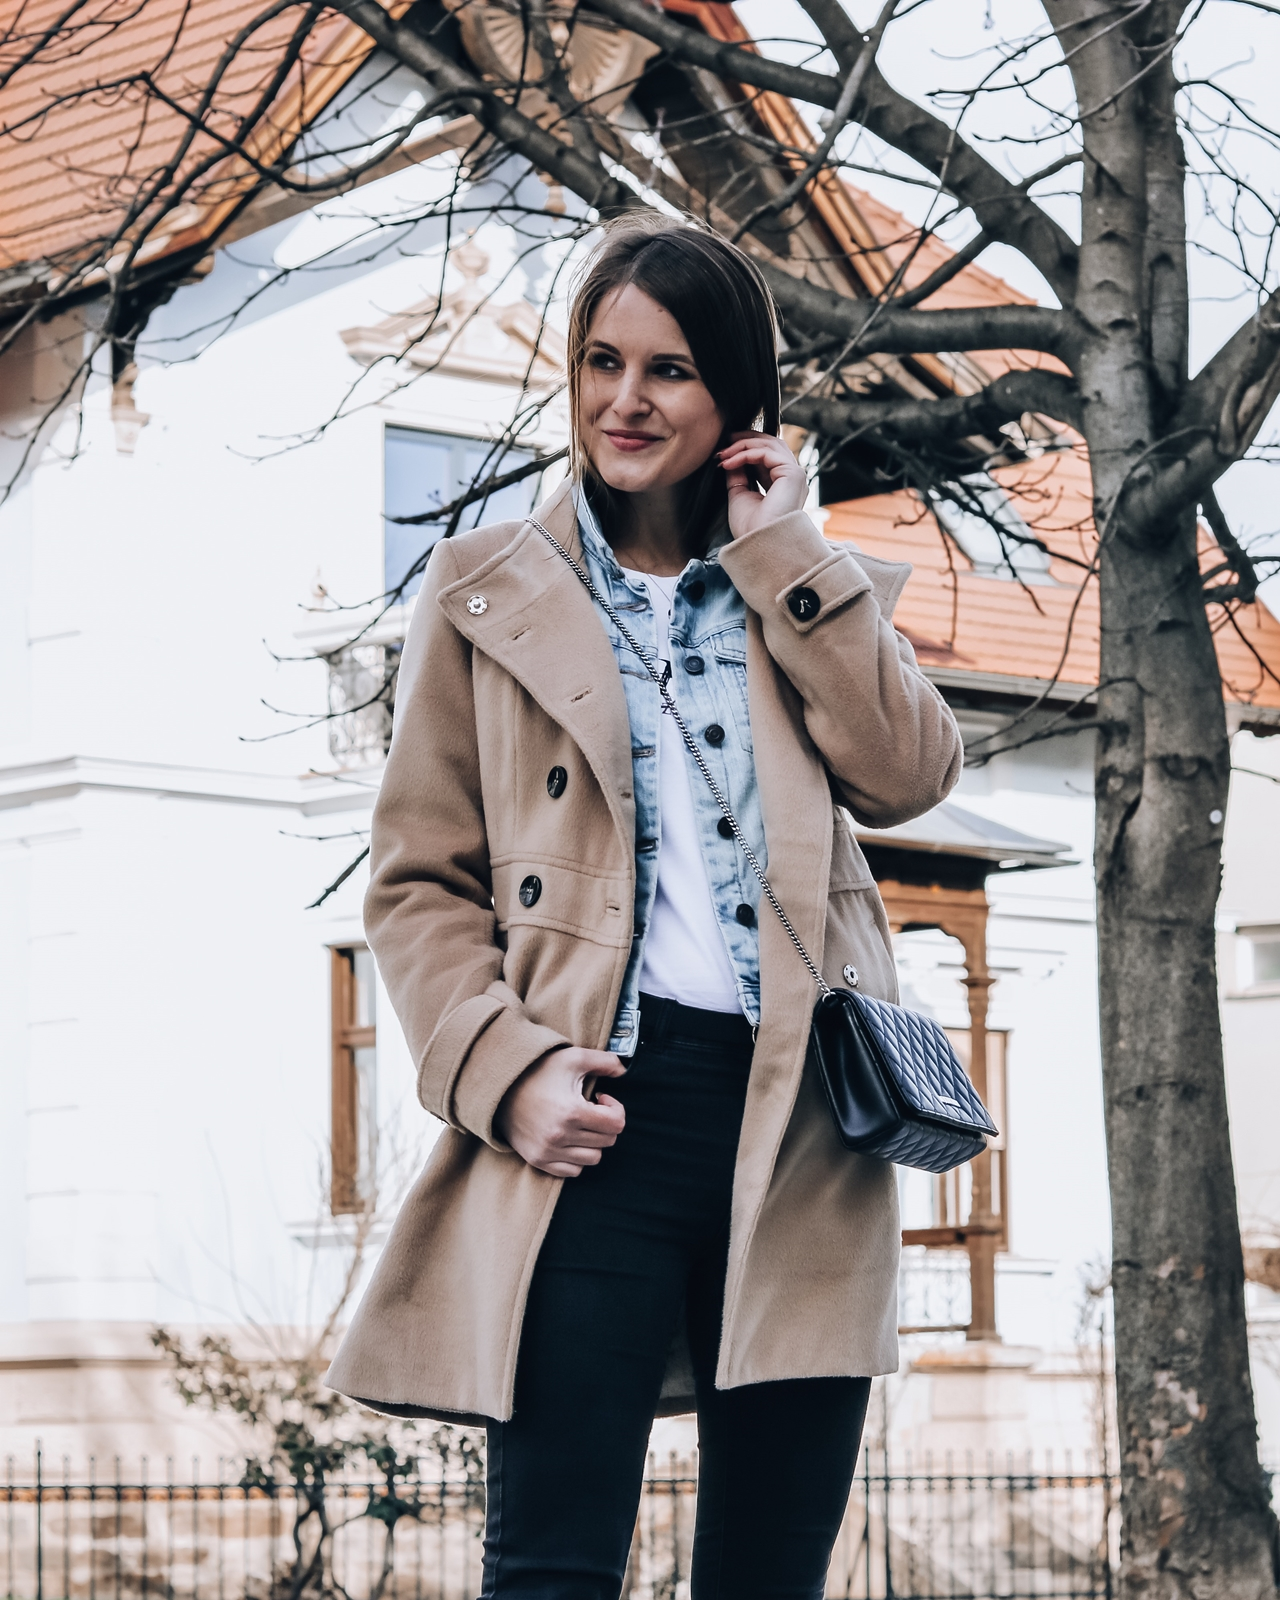 10 stylische Outfit Ideen für den Winter - Winter Looks - Was ziehe ich im Winter an - Stylingideen - Outfits für den Winter - coole Winter Looks - Styles für den Winter - Winterstyles Fashionladyloves by Tamara Wagner - Fashionblogger